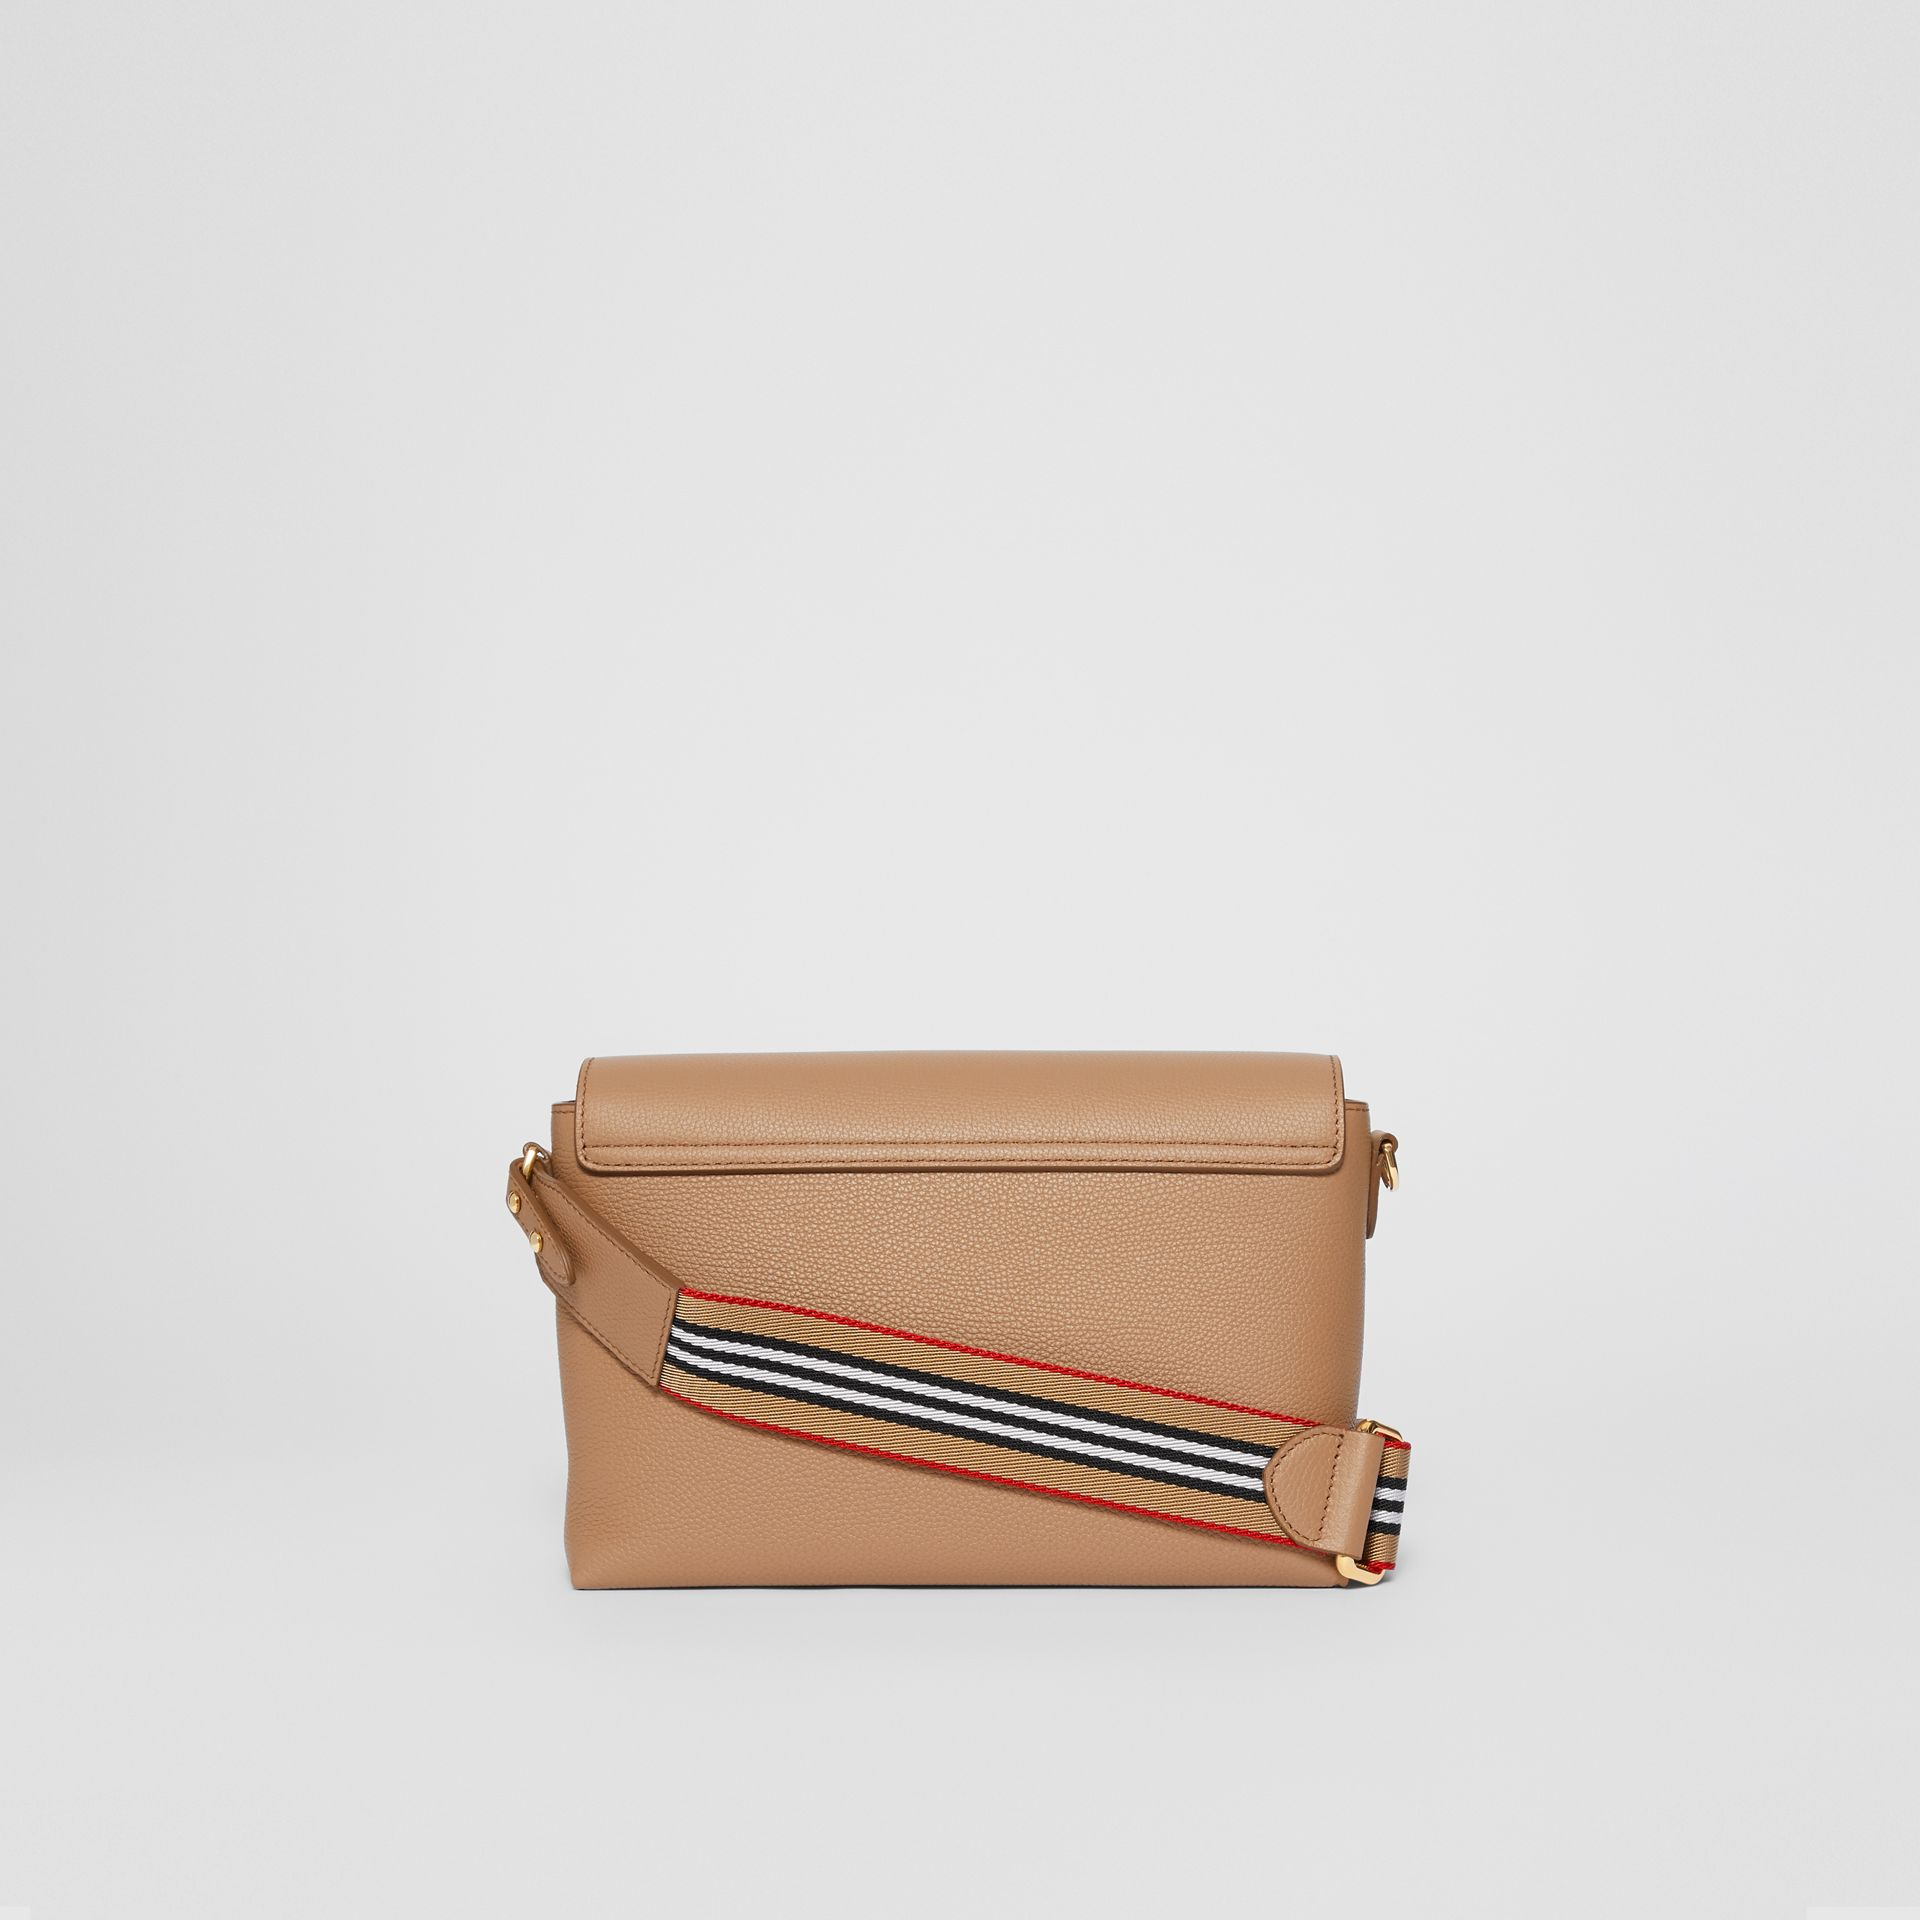 Grainy Leather Note Crossbody Bag in Camel - Women | Burberry - gallery image 7